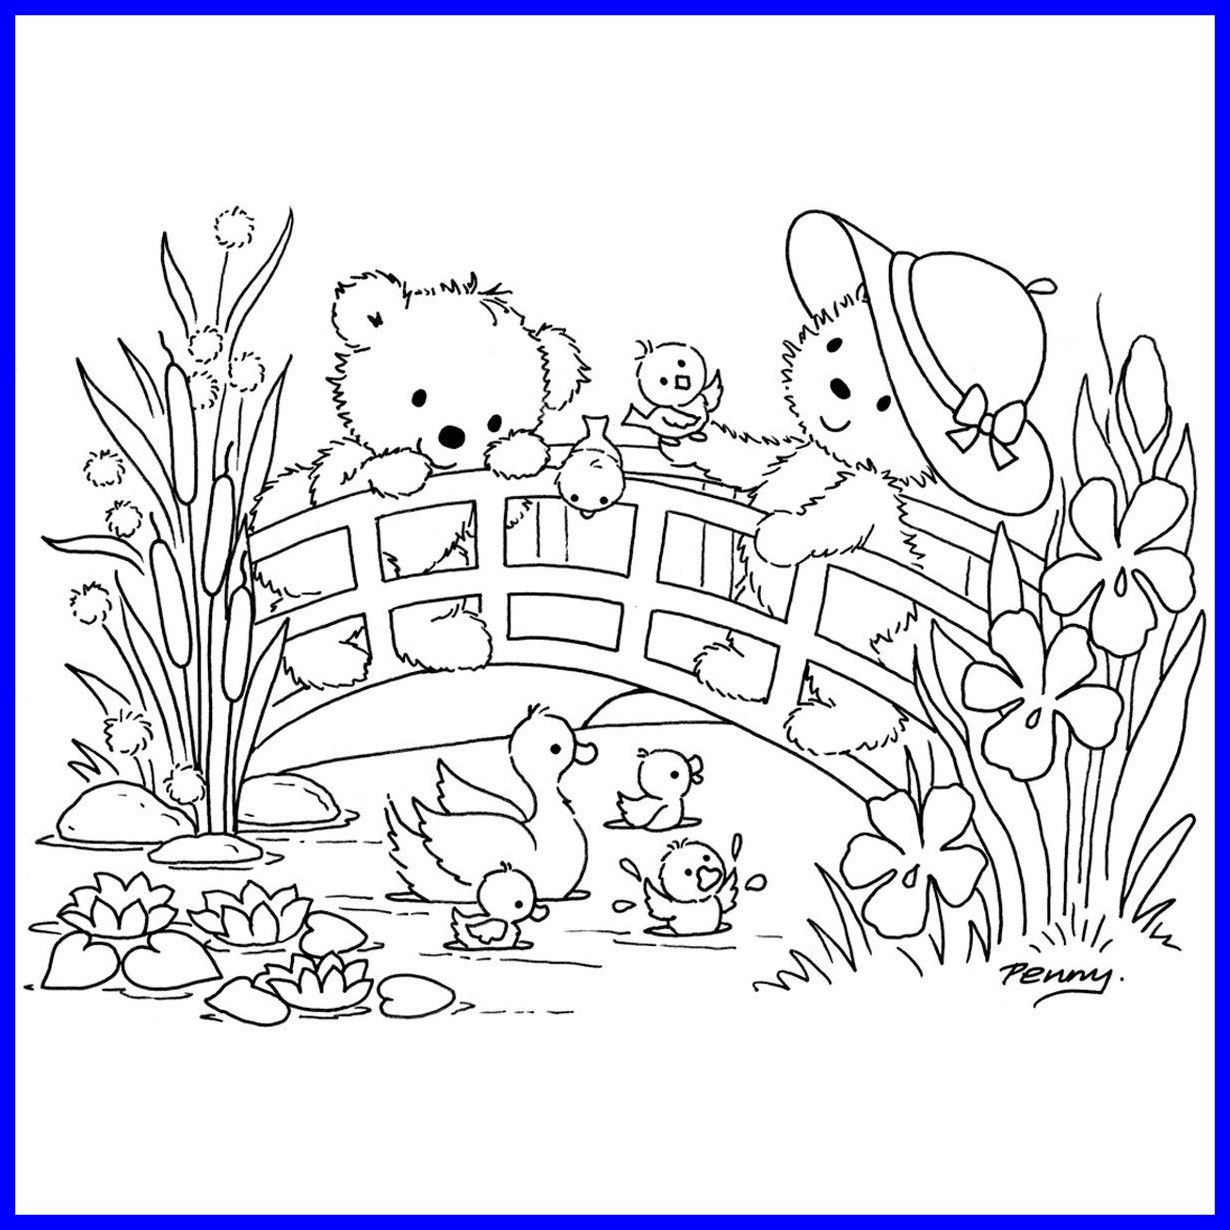 Pin By Debbie Jones On Color Book Coloring Pages Coloring Books Embroidery Patterns [ 1230 x 1230 Pixel ]